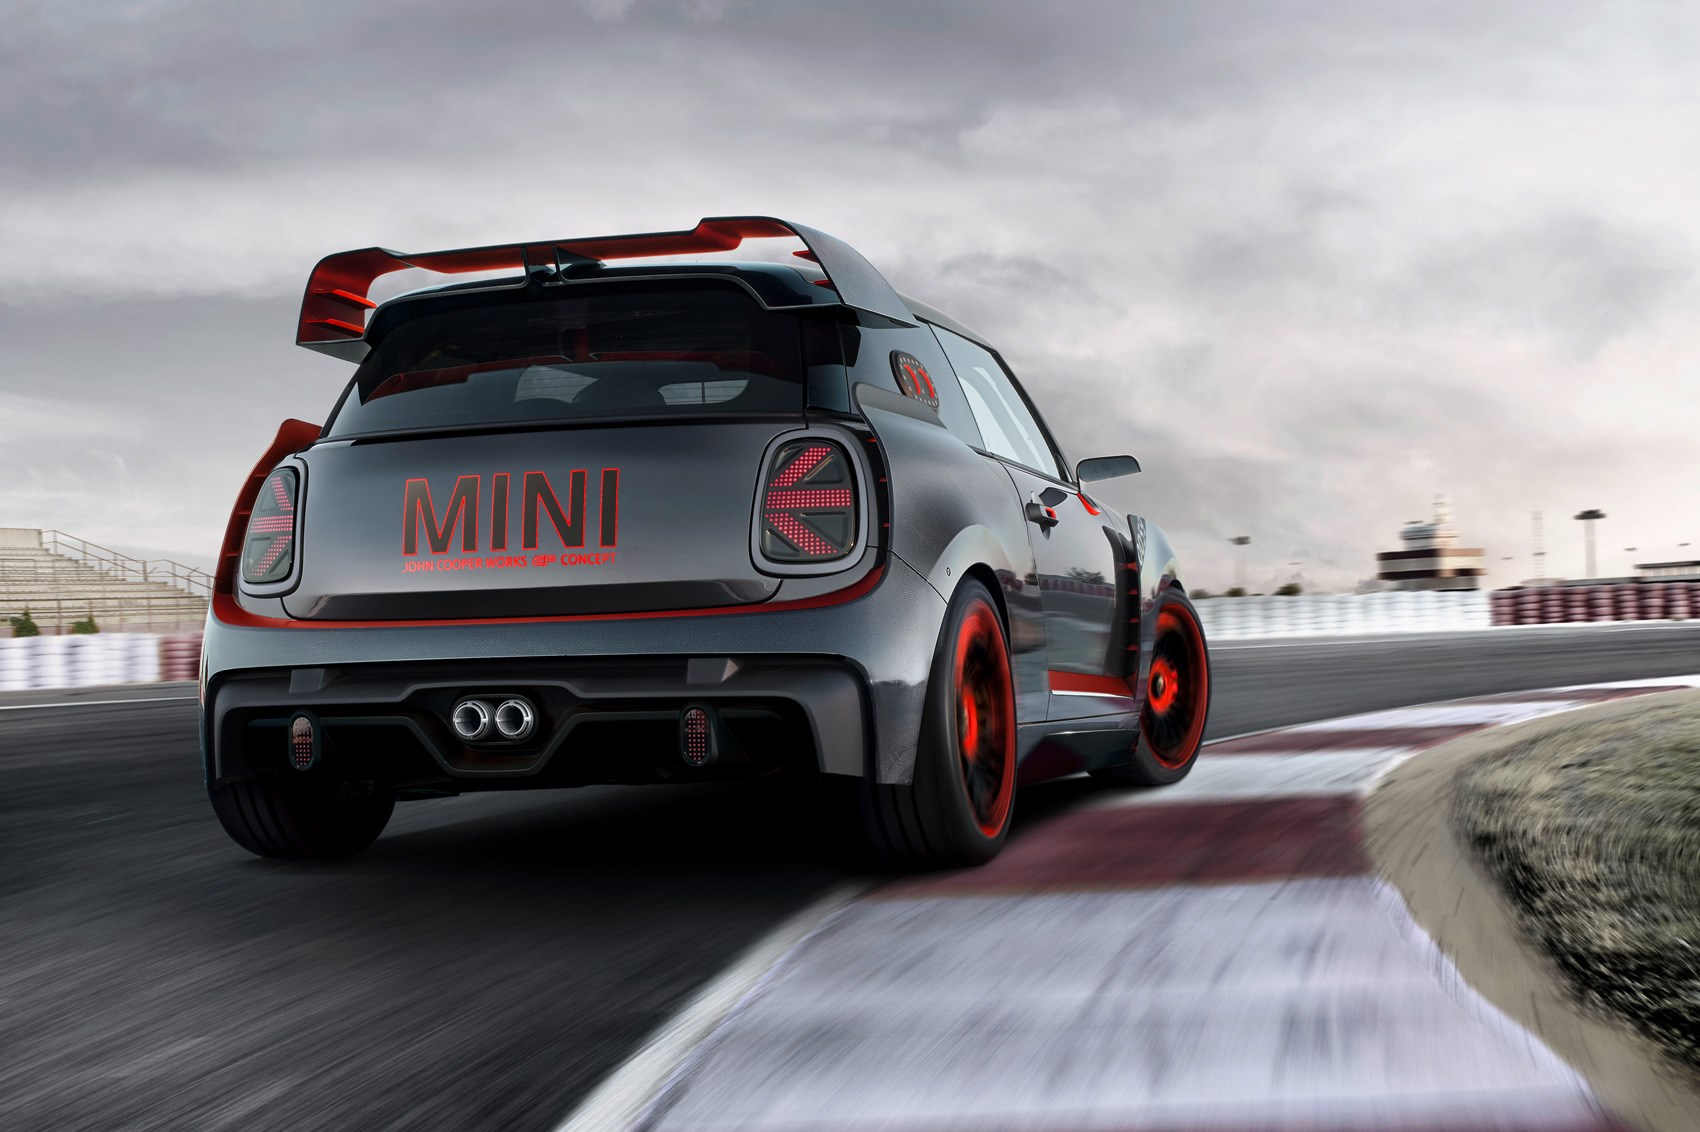 Hardcore Mini John Cooper Works GP Concept races into Frankfurt 2017